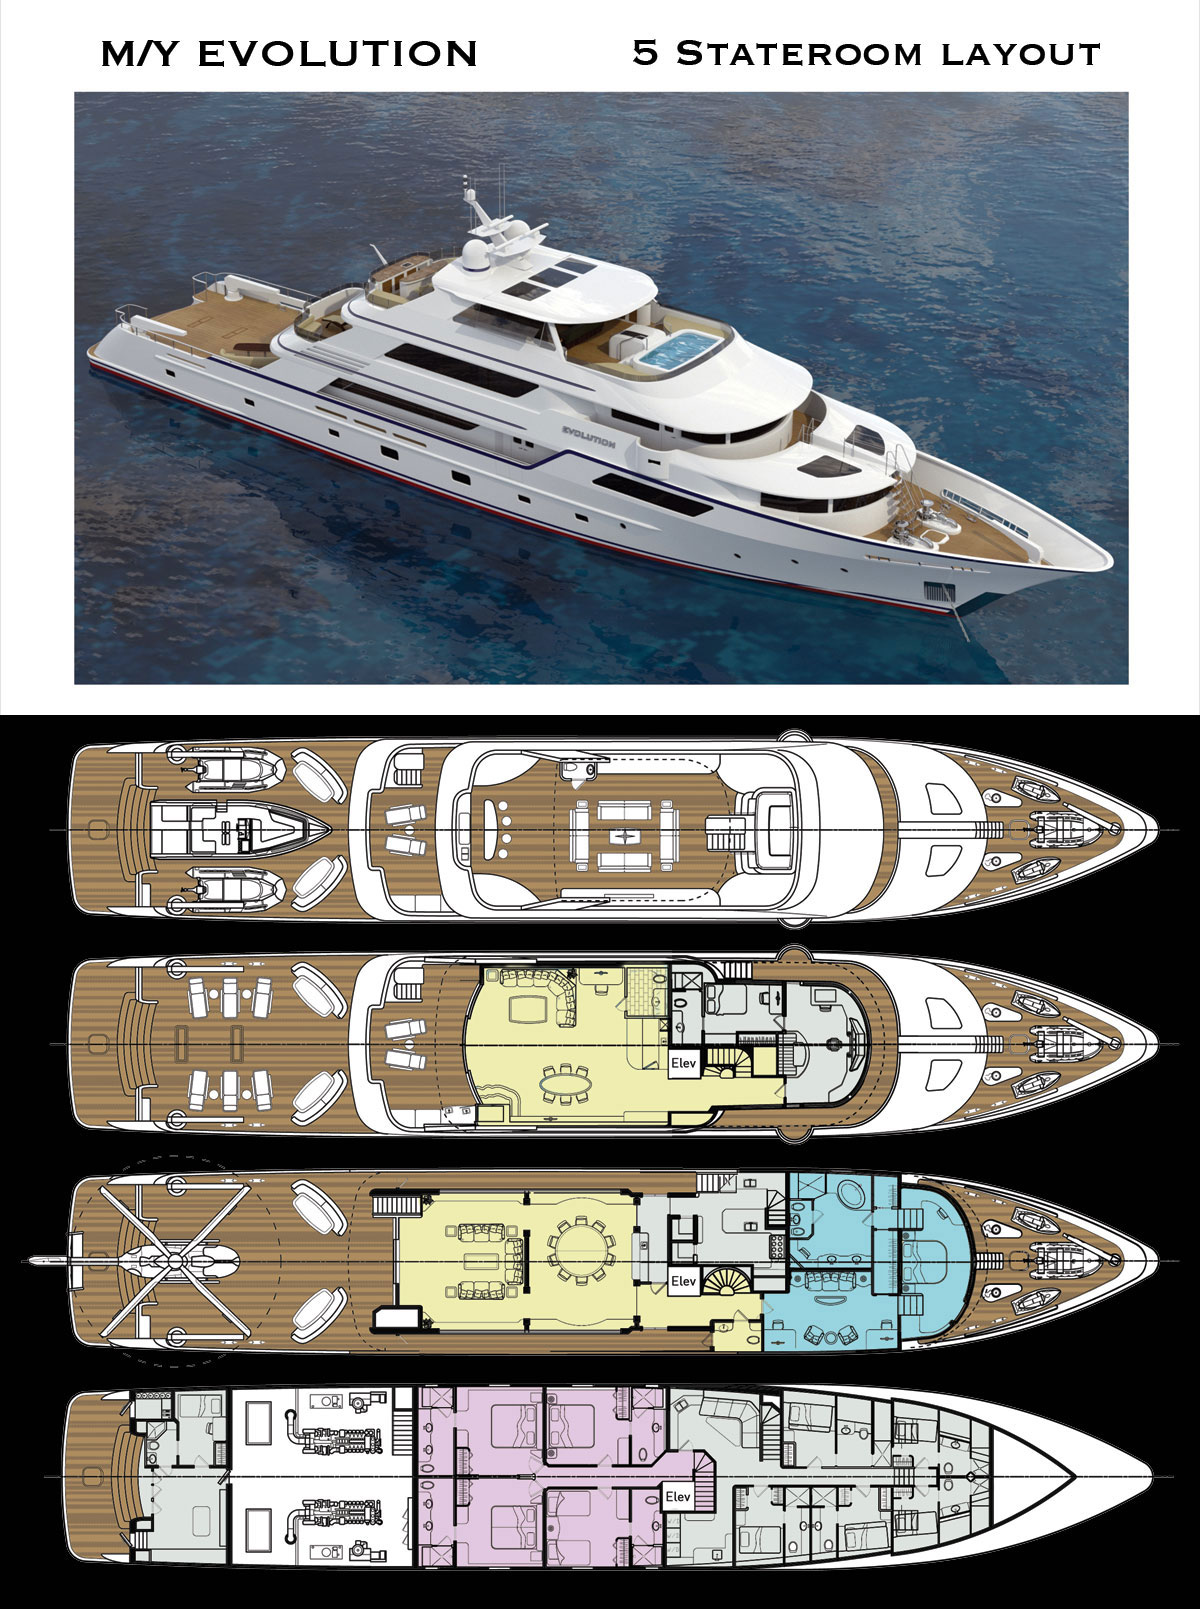 Deck Layout for 50 Meter Luxury Explorer Yacht with 5 Staterooms